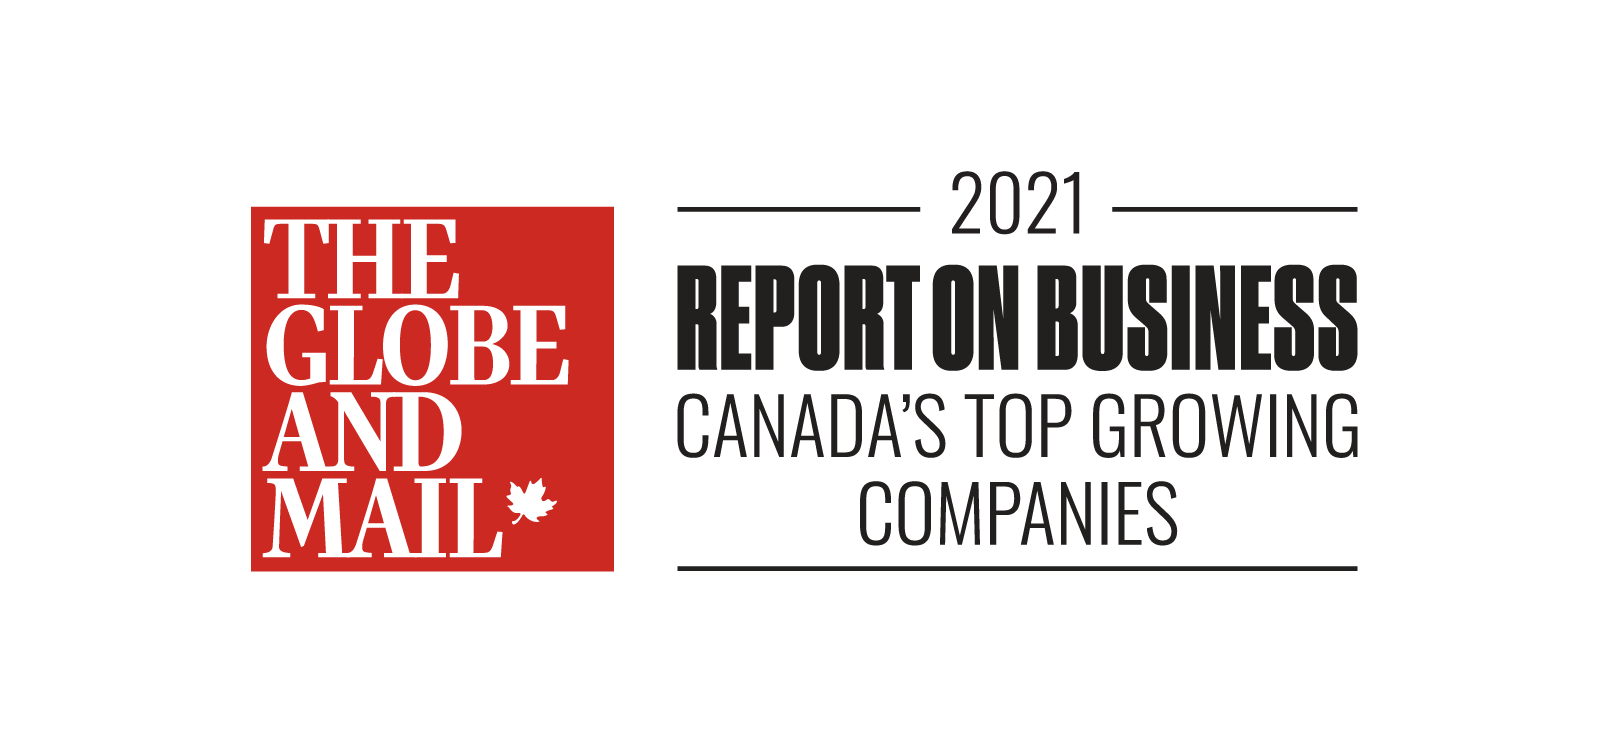 The Globe and Mail 2021 Report on Business Canada's Top Growing Companies Award